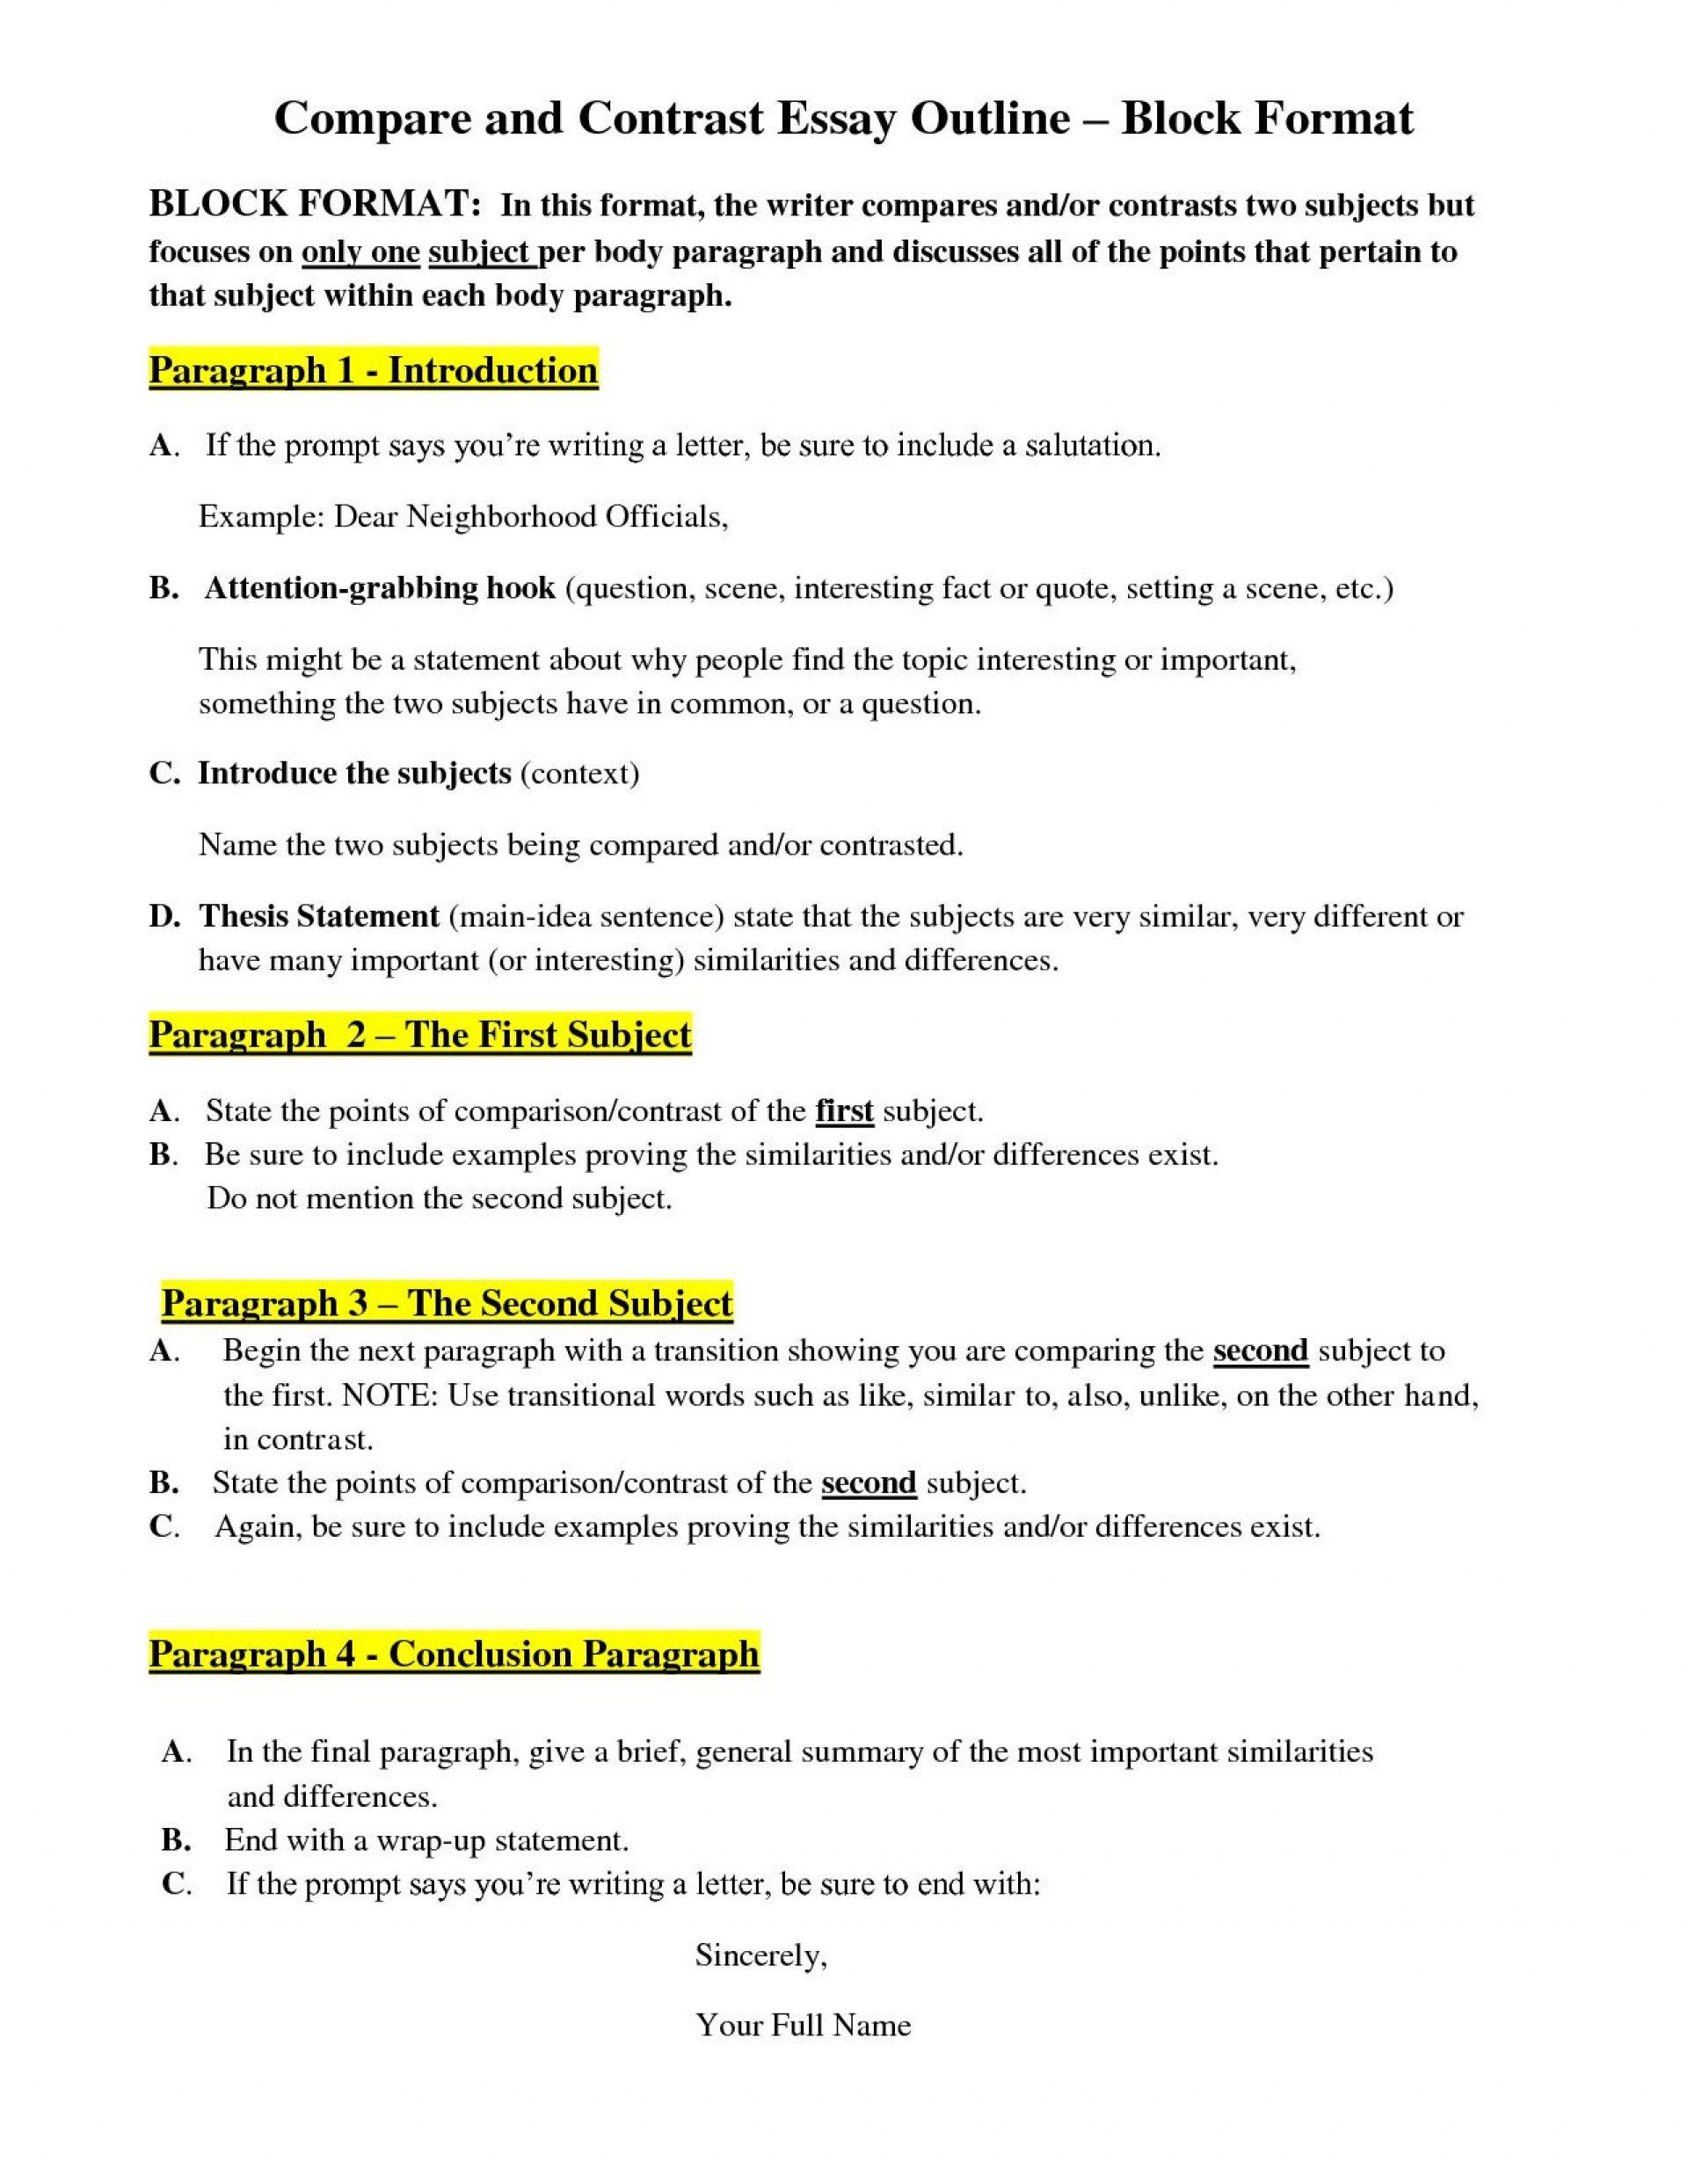 004 How To Outline Compare And Contrast Essay Example Awesome A Create An For 1920